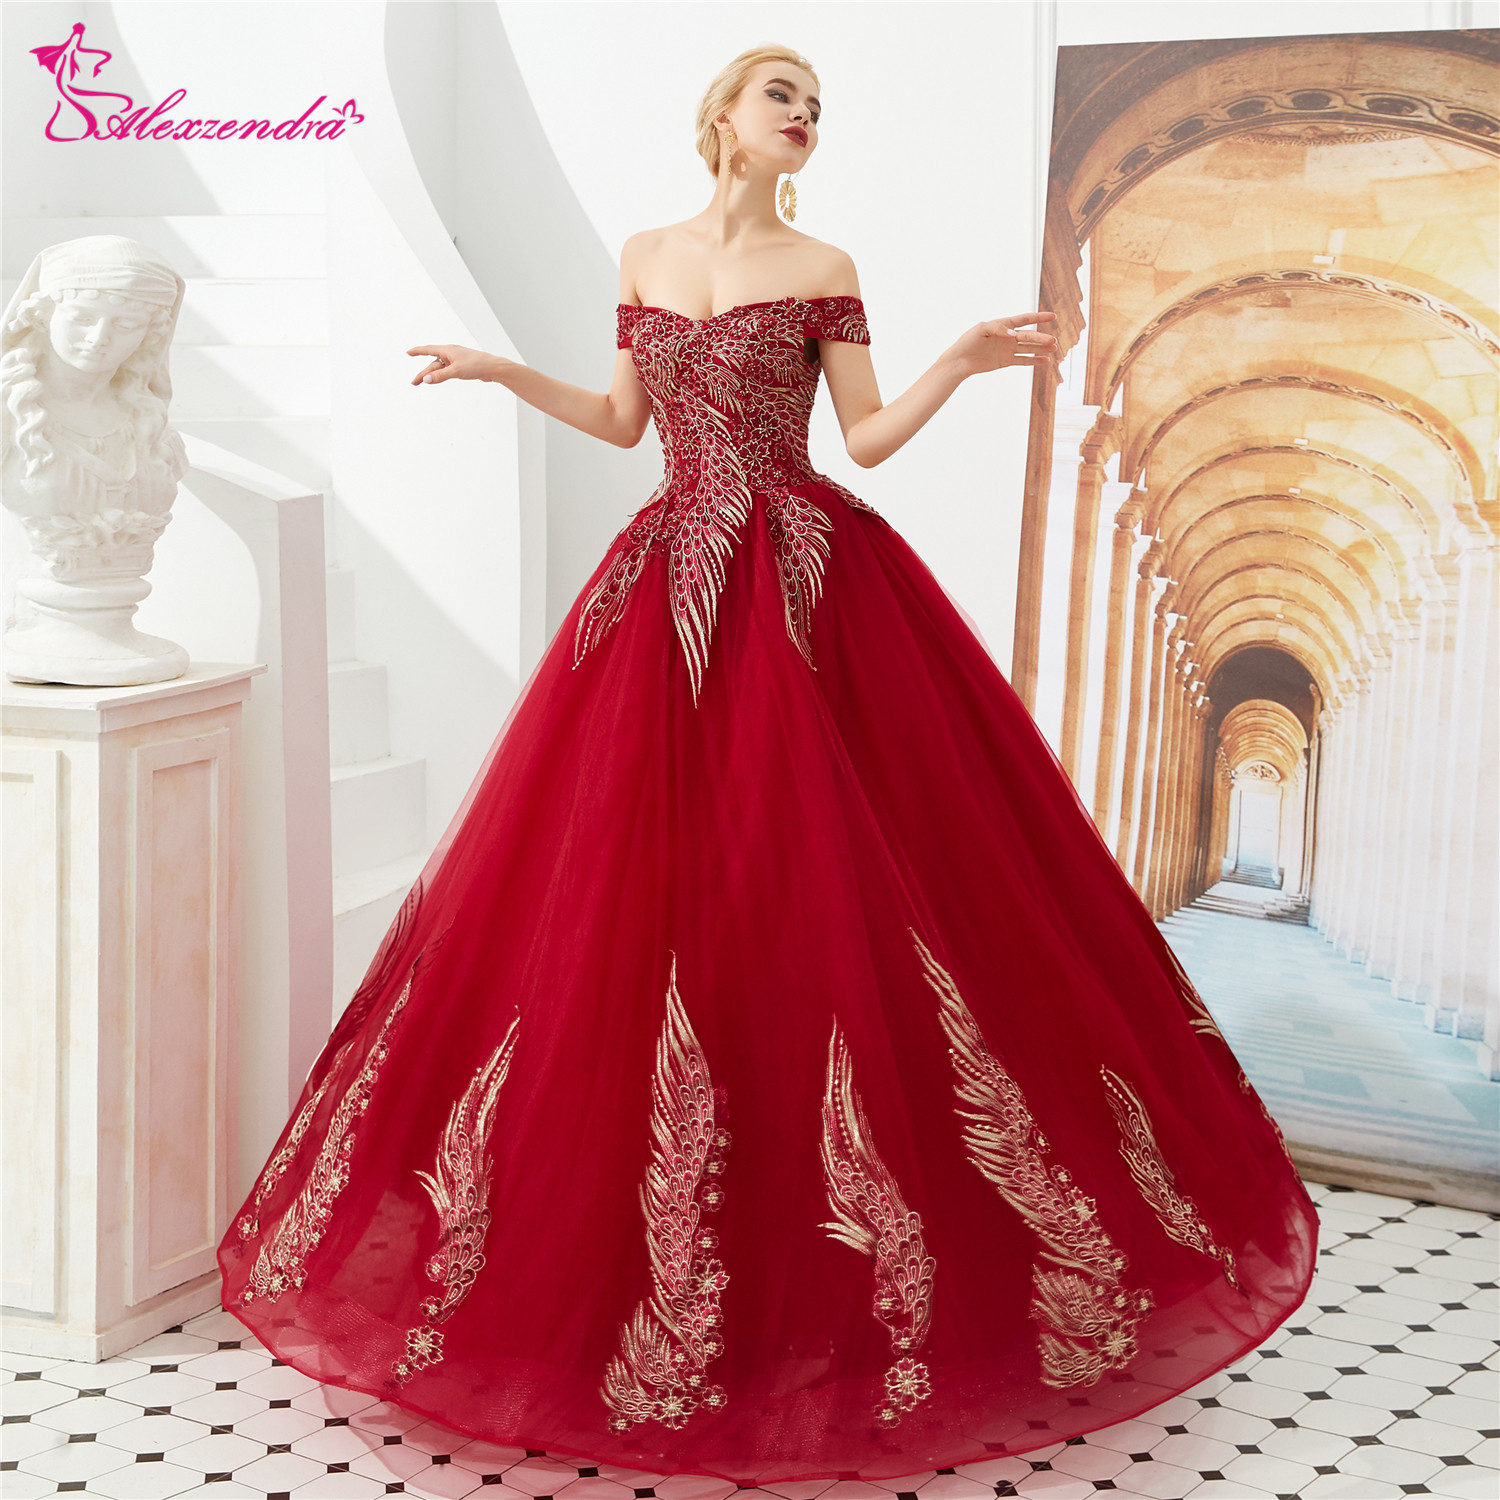 Alexzendra Ball Gown Off the Shoulder Red   Prom     Dresses   2019 Applique Flowers Formal Evening   Dresses   Party   Dress